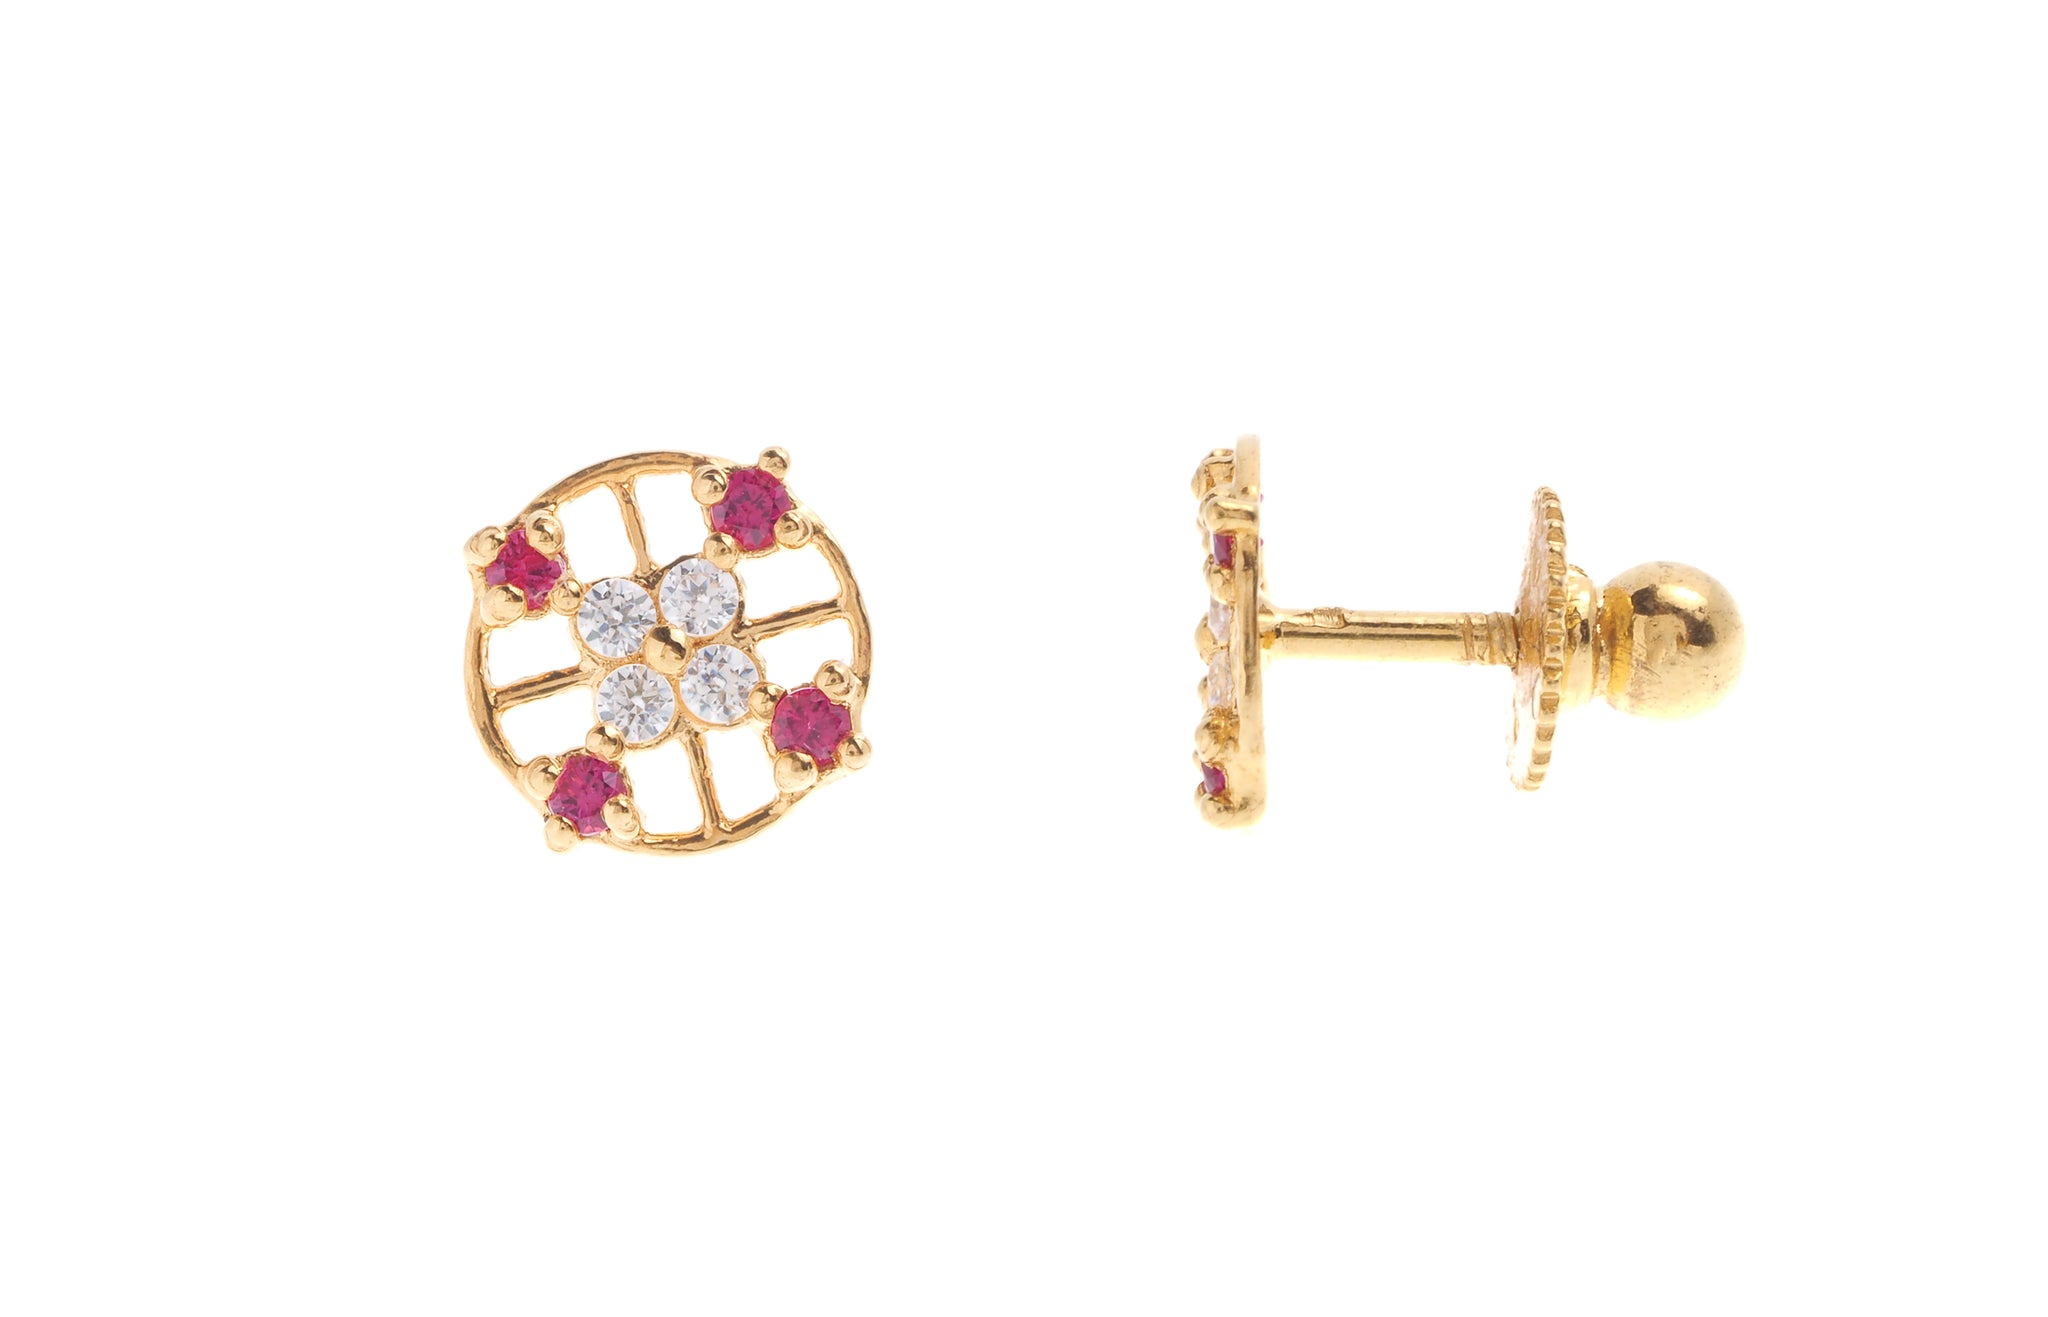 6d9014ffc 22ct Gold Stud Earrings Cubic Zirconia (White & Red) with Screw Backs  (1.4g) (E-6621)